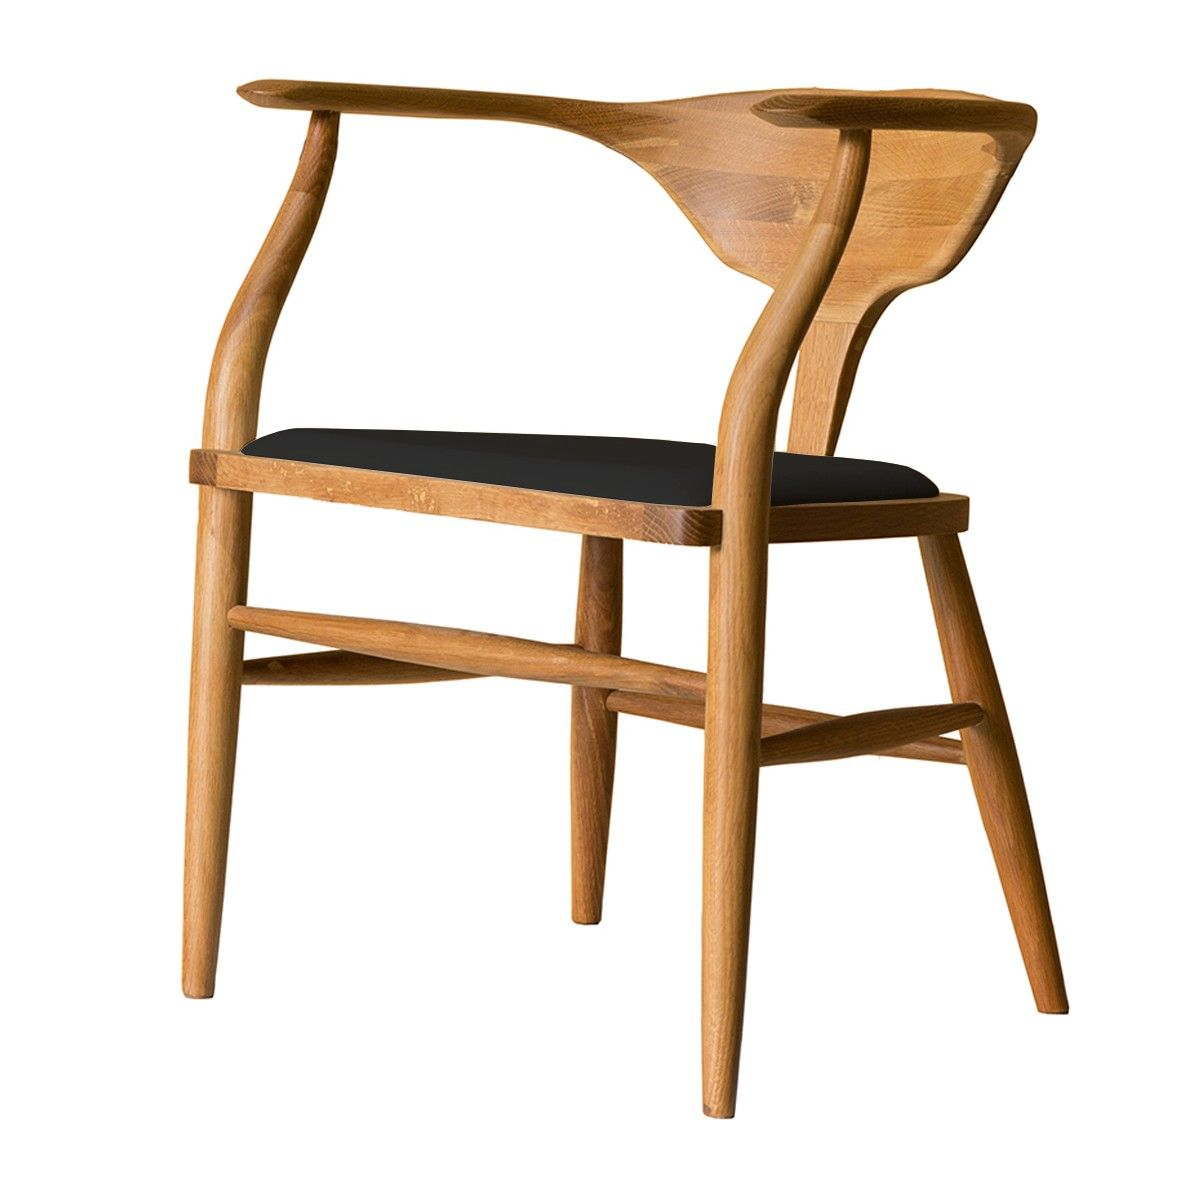 Buy Modern Dining Chairs Online Or Visit Our Showrooms To Get